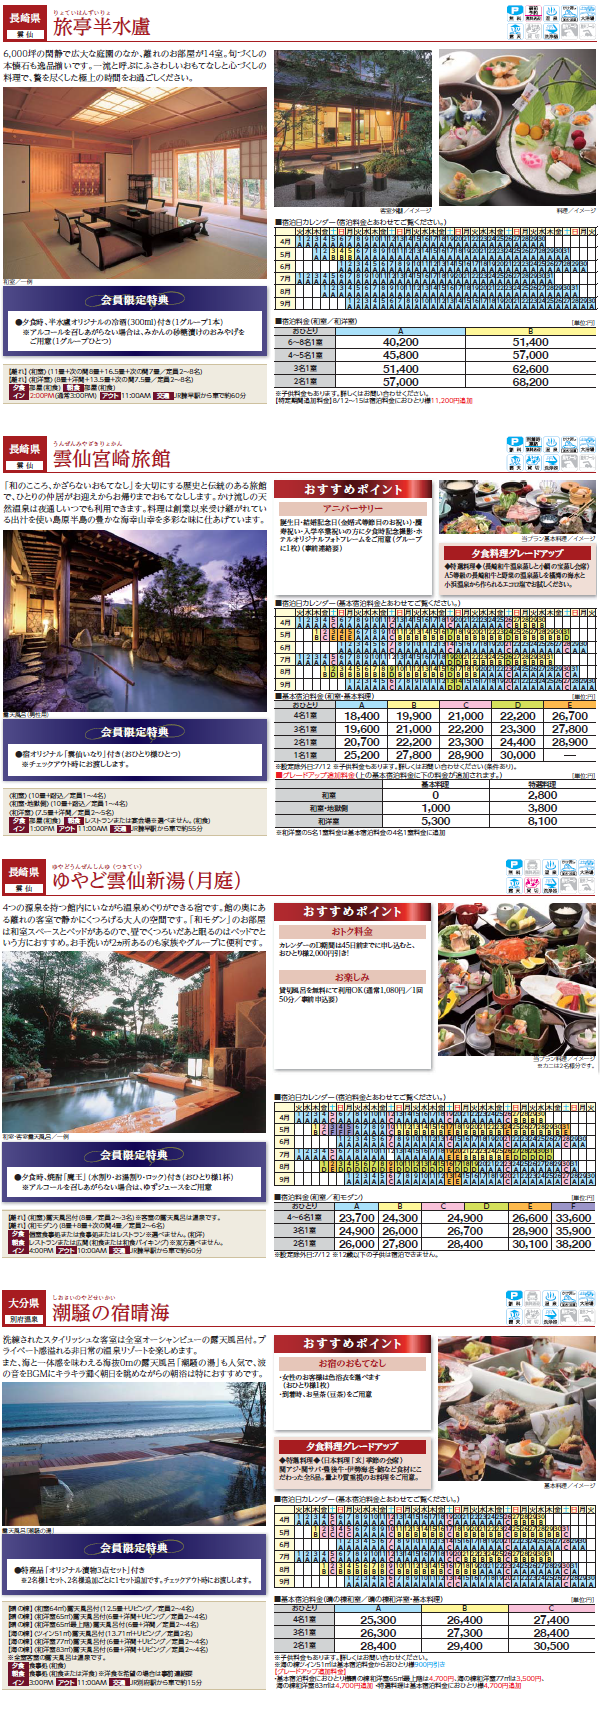 stay_plan_ryokan_1403_24